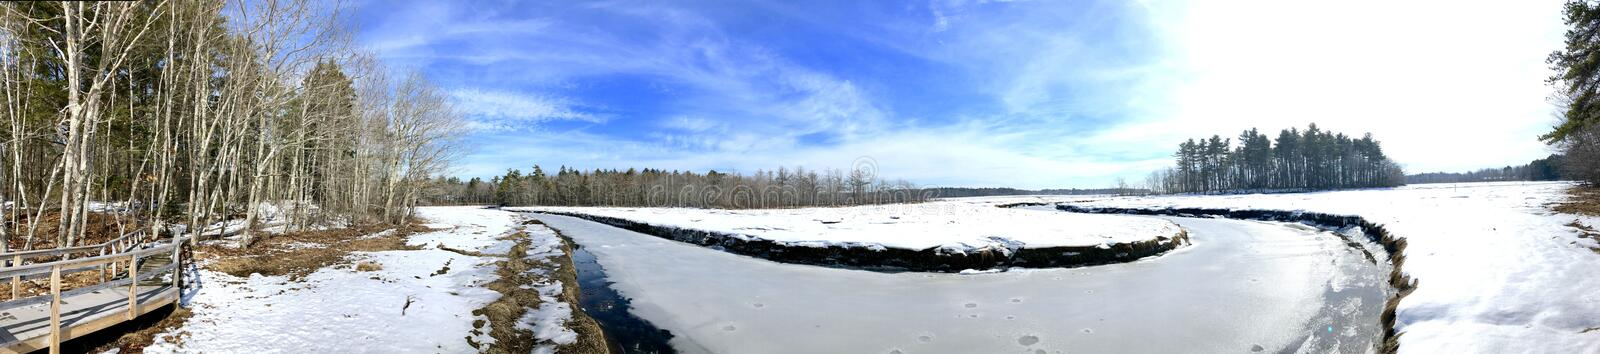 Tidal salt marsh at the Rachel Carson National Wildlife Refuge. In winter in Wells Cumberland County,York County, Maine, United States stock image